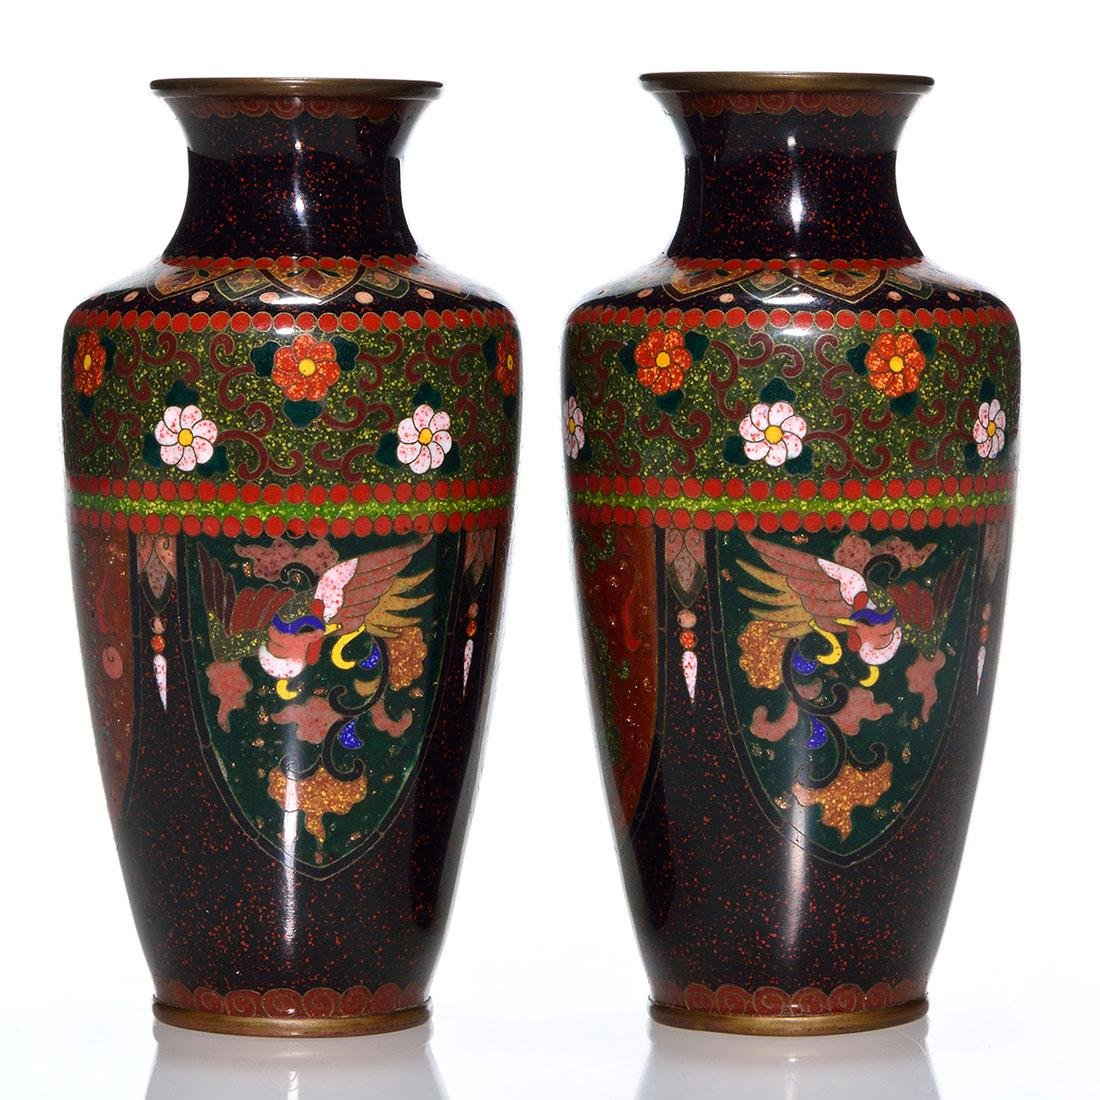 Pr Chinese Cloisonne miniature vases, gold, 4 3/4""